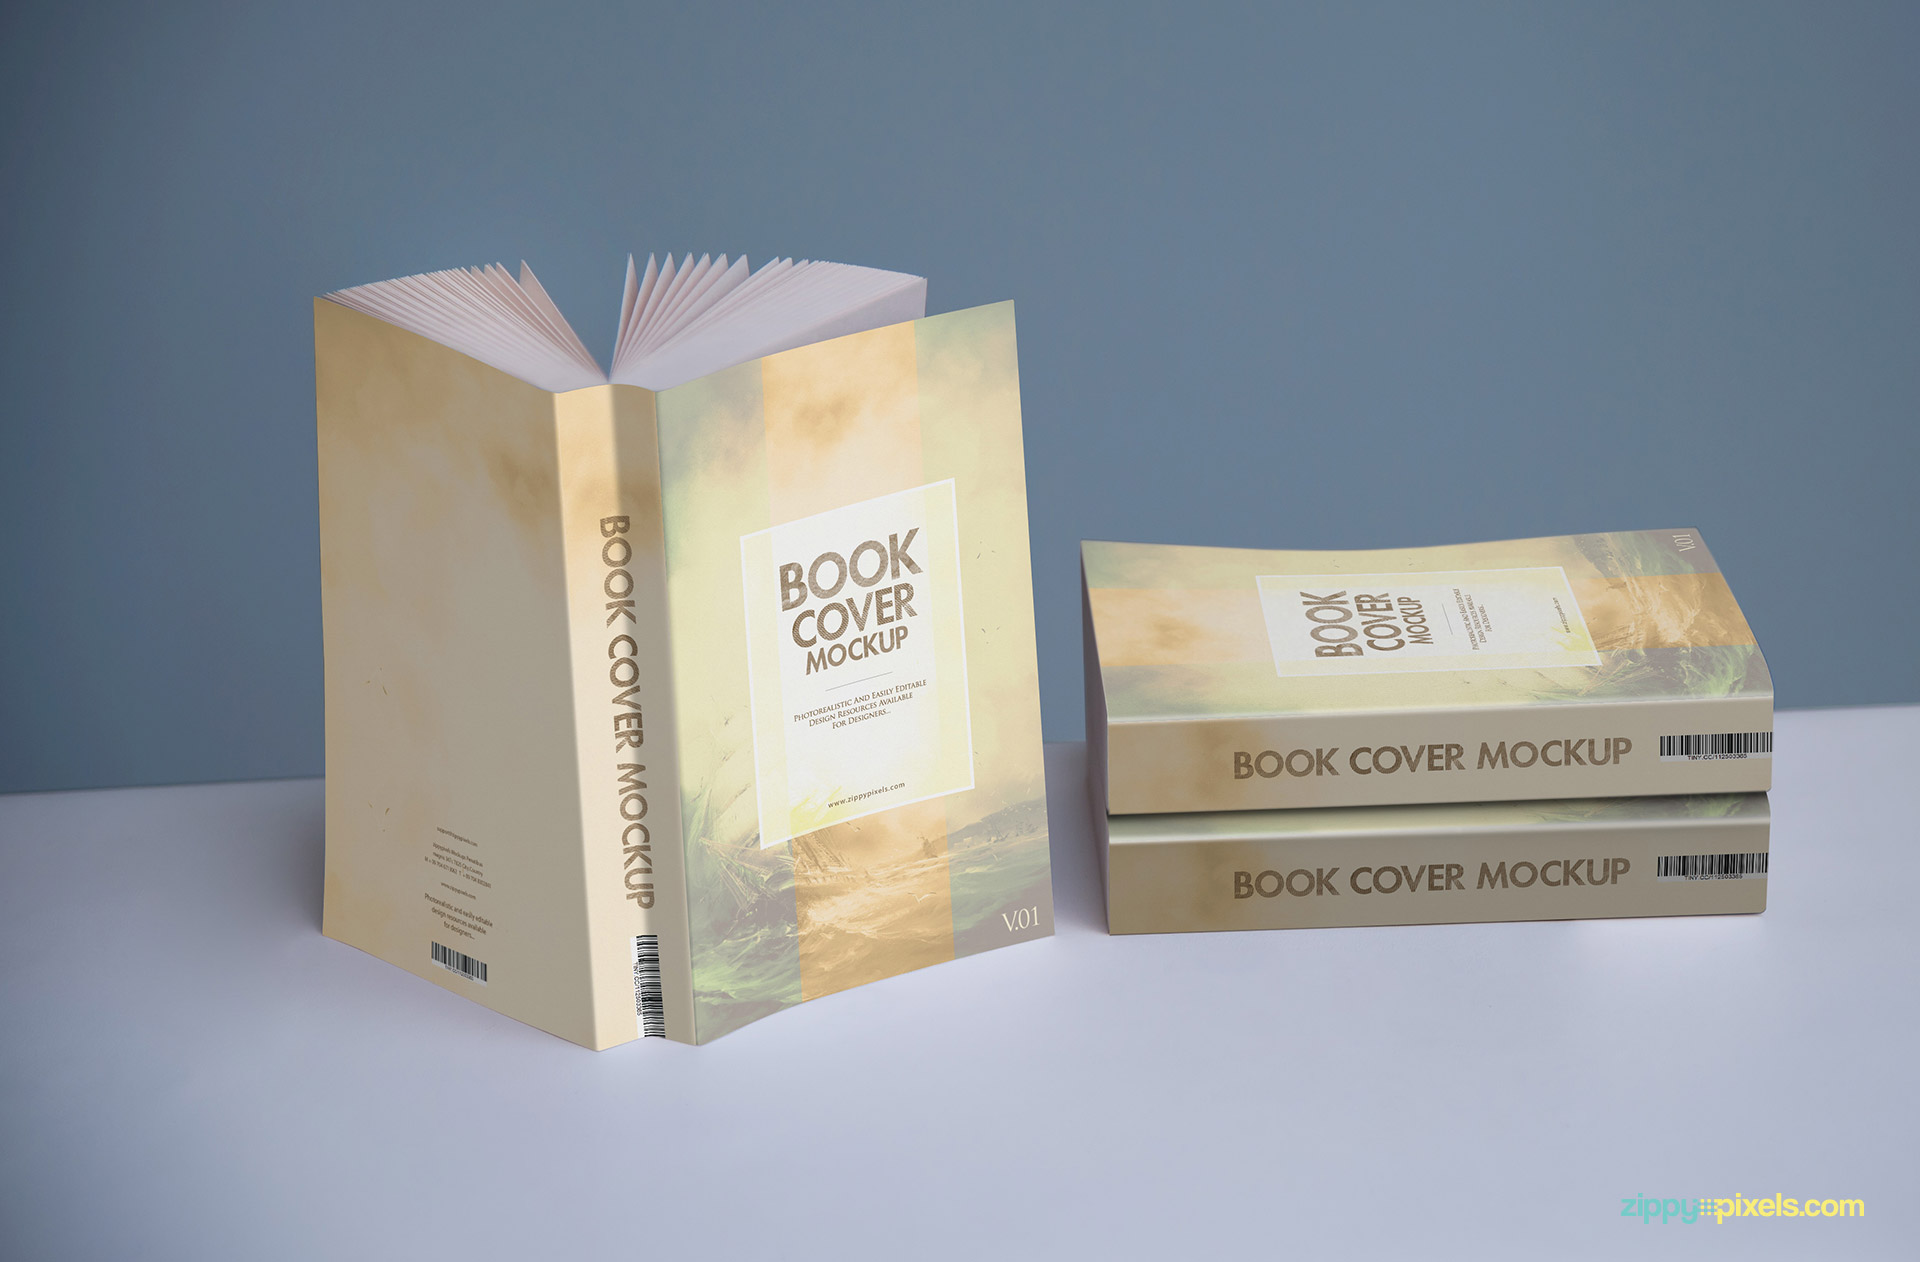 Realistic book cover mockup showing cover designs on three paperback novels